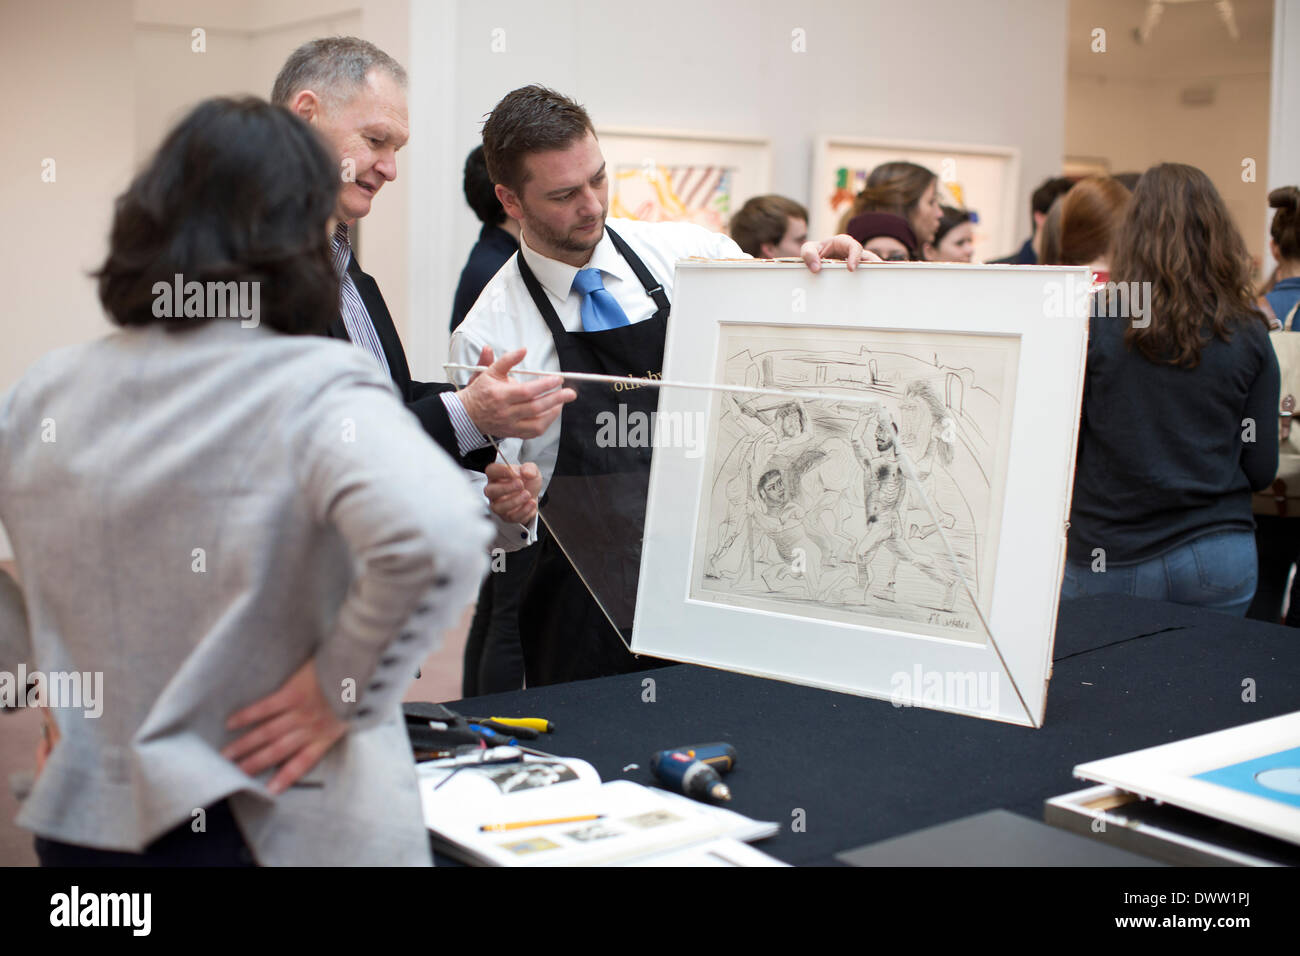 Sotheby's, New Bond Street, London, UK 13th March, 2014. Sotheby's auction of Prints & Multiples, Old Master, Modern and Contemporary, London, UK A curator takes PABLO PICASSO 1881 - 1973 LE COMBAT DANS L'ARÈNE (B. 301; BA. 629) Drypoint, 1937, signed in pencil, numbered 32/50, on Montval laid paper with the Vollard and Picasso watermarks out of it's frame for a collector to view. Estimated at £7,000 - 9,000. Credit:  Jeff Gilbert/Alamy Live News - Stock Image